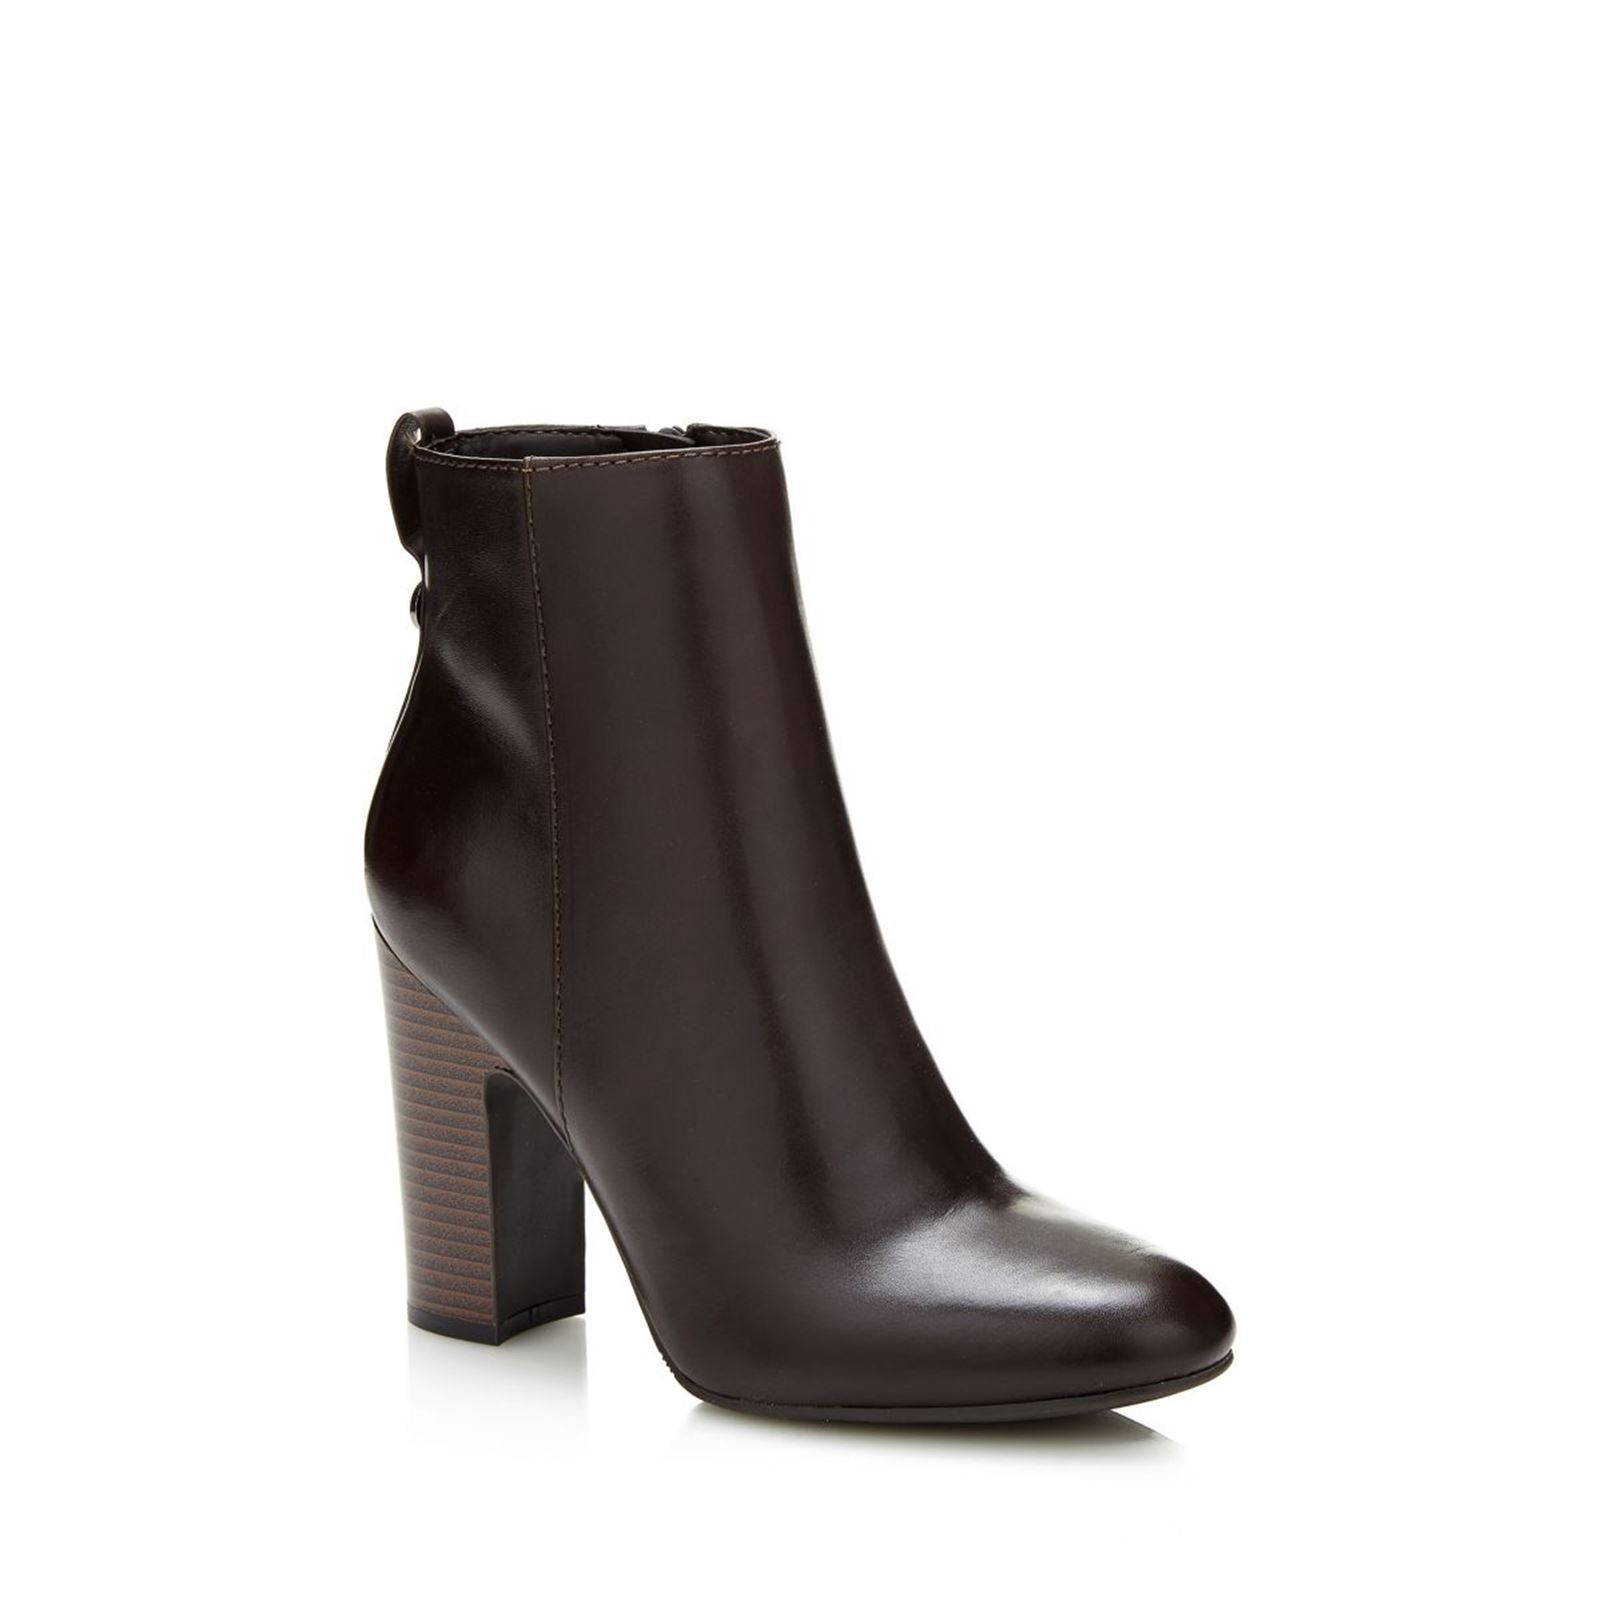 Guess Nasia - Bottines  en cuir - marron